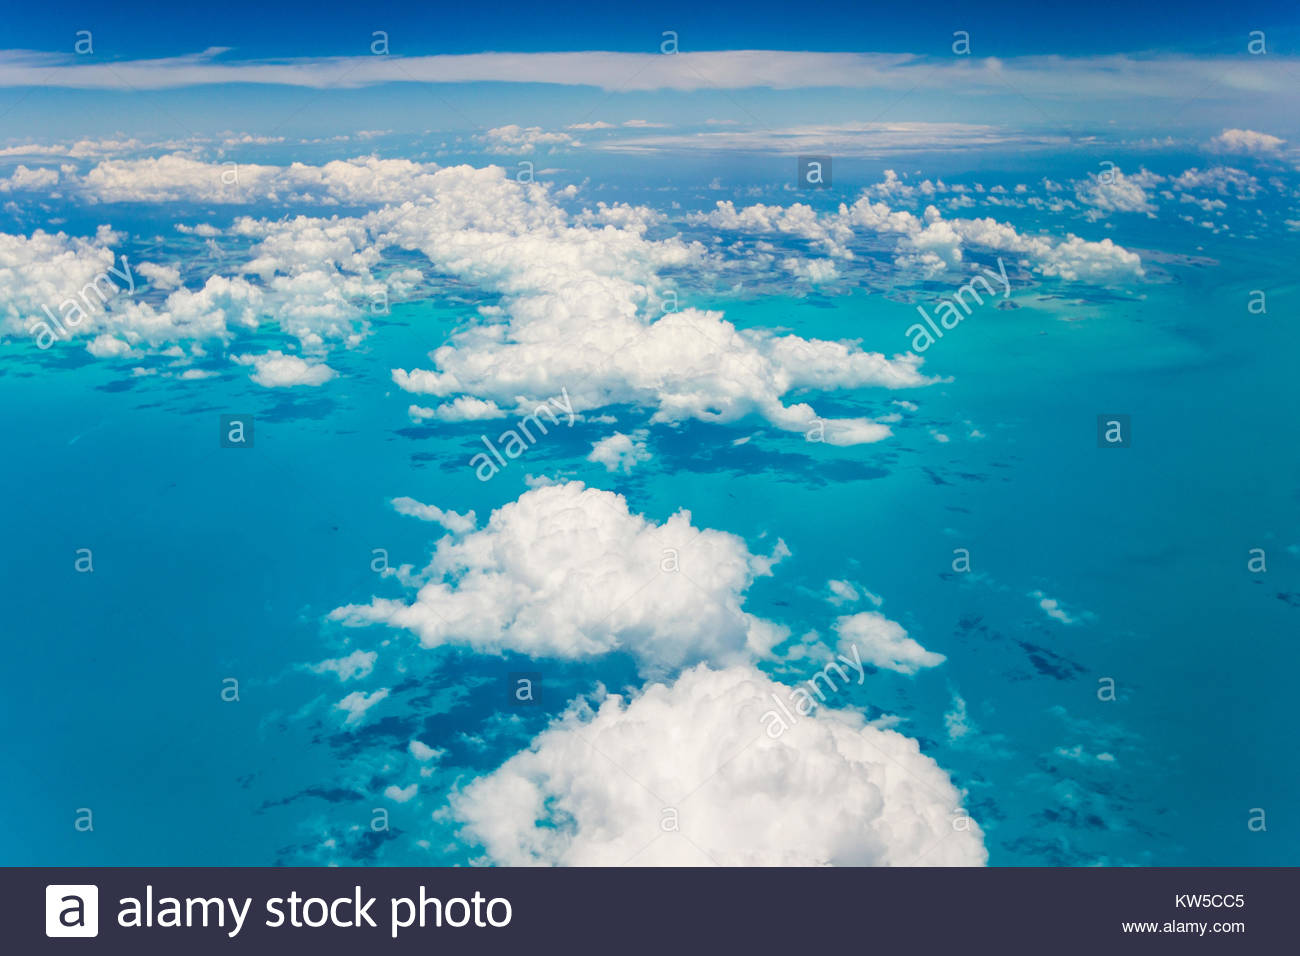 An aerial view above the clouds over the turquoise waters of the Caribbean Sea, near the Bahamas. - Stock Image